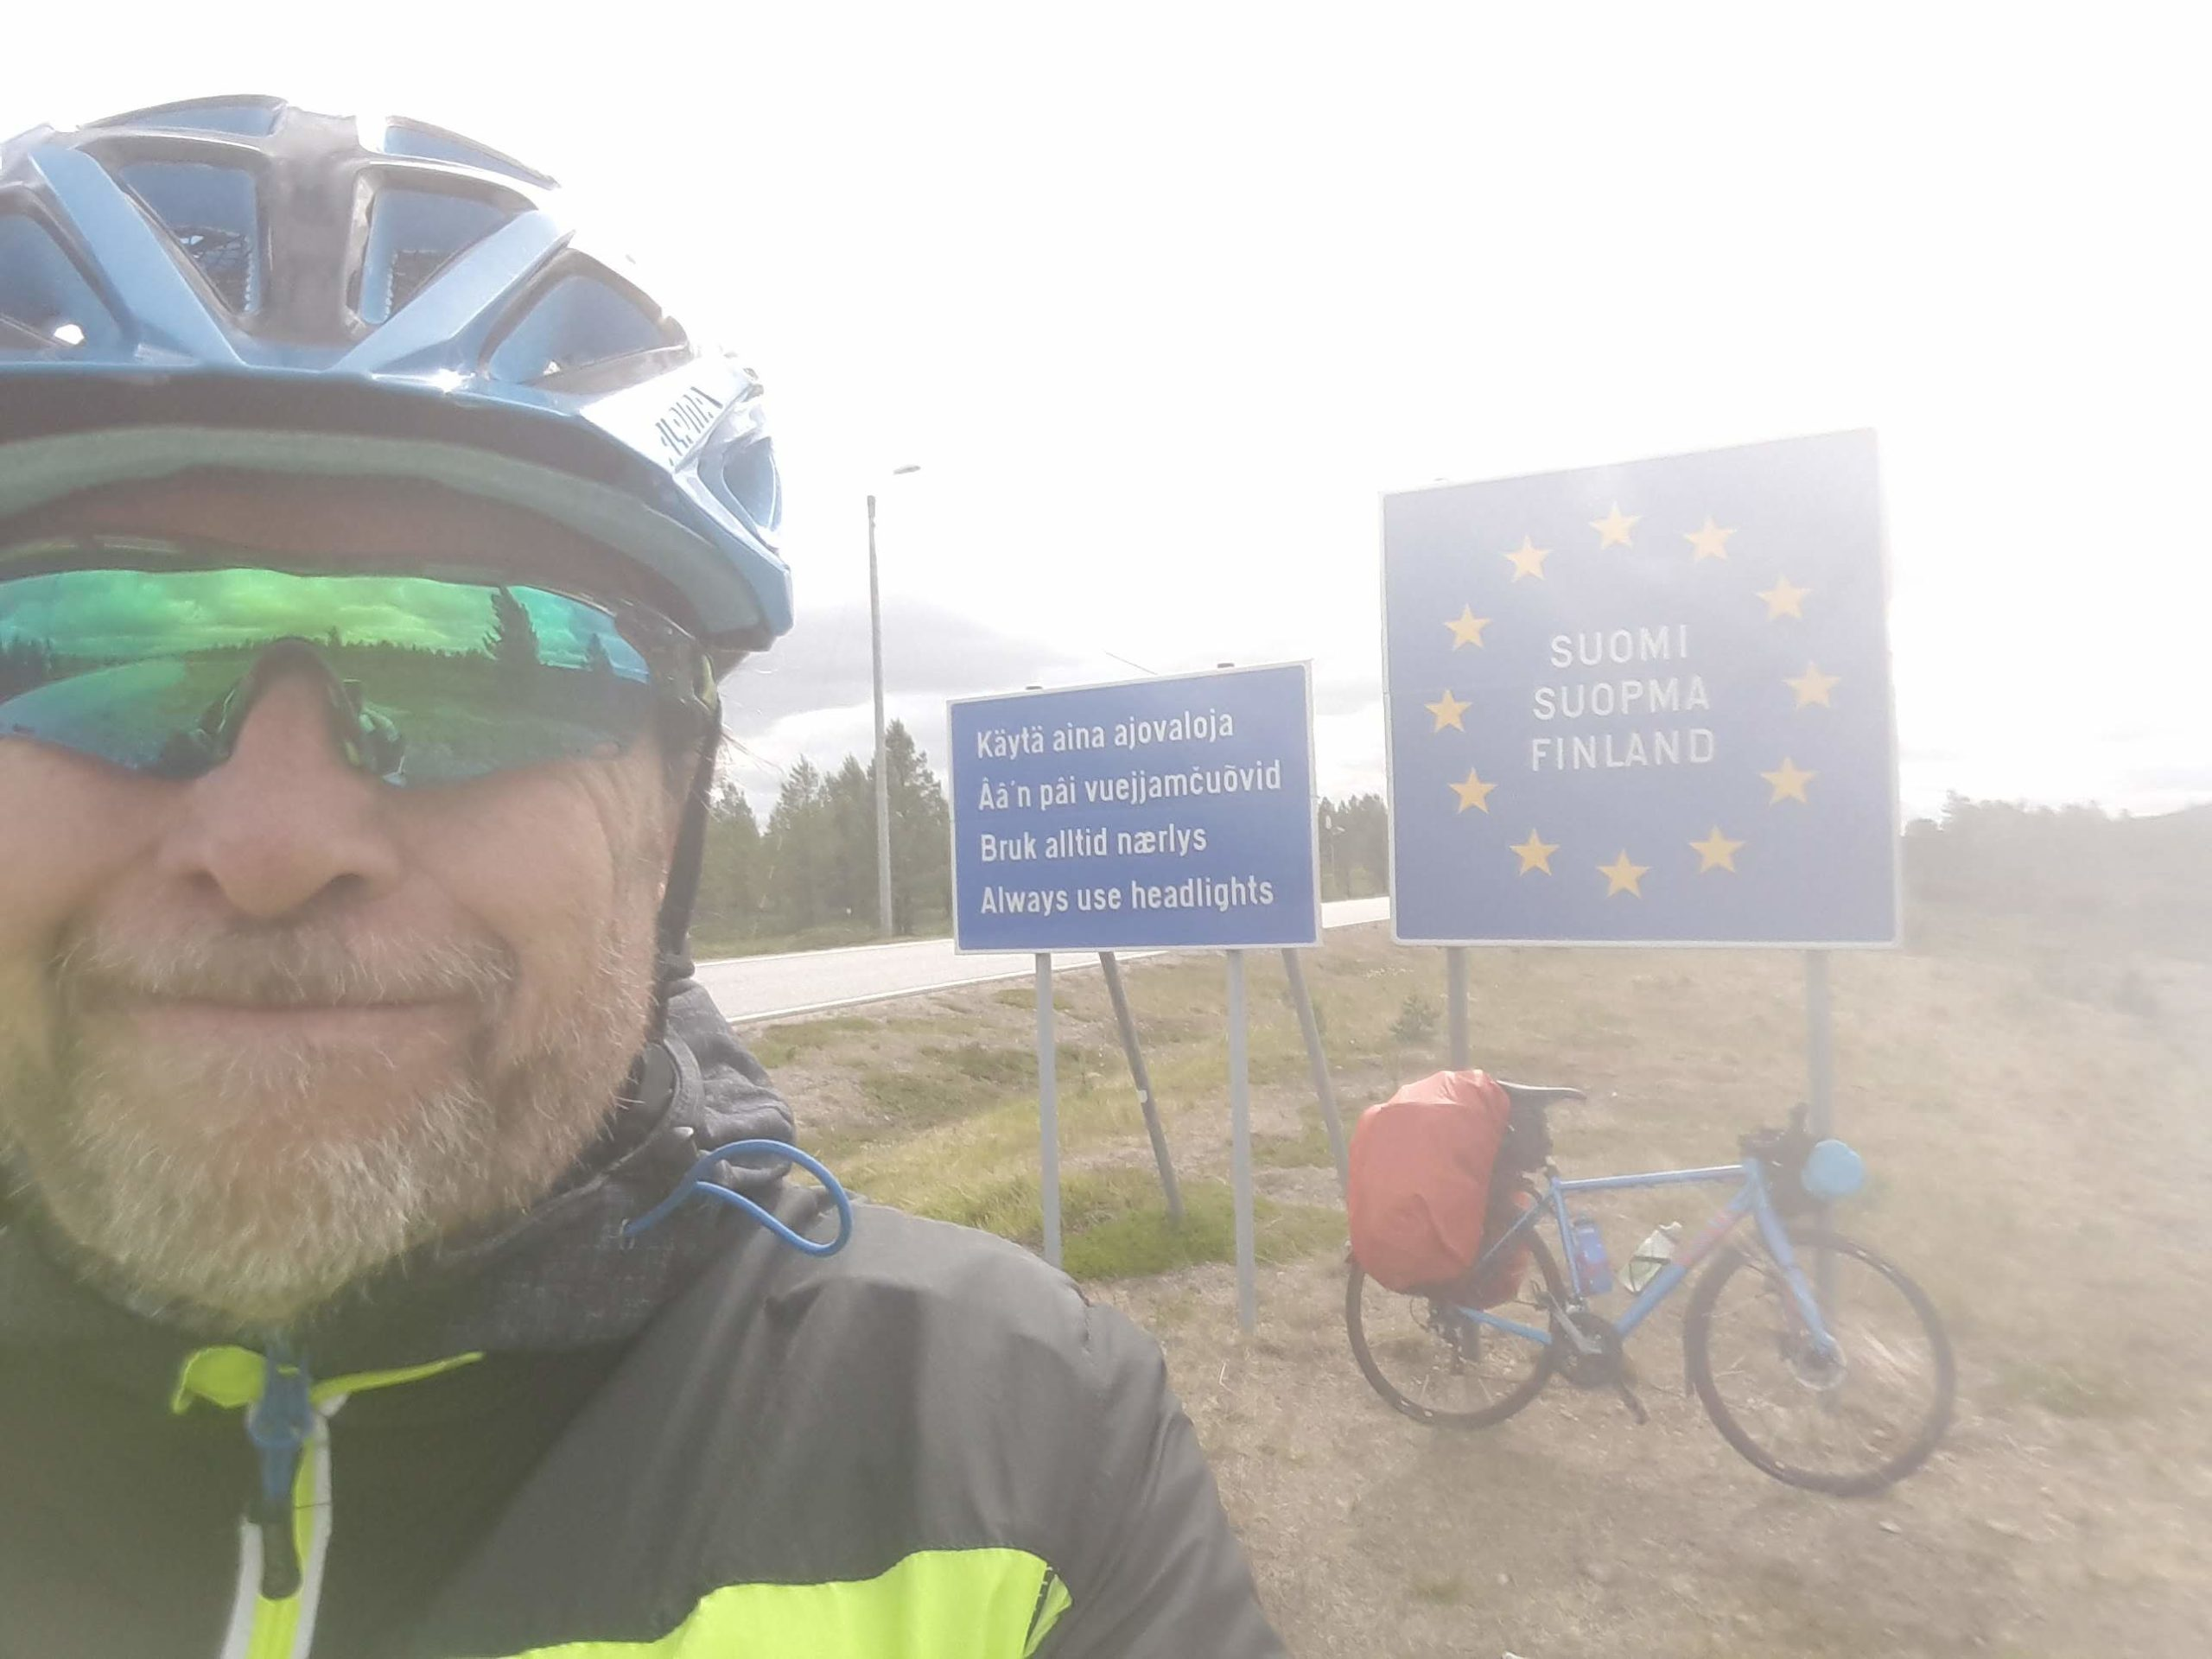 Crossing border into Finland from Norway